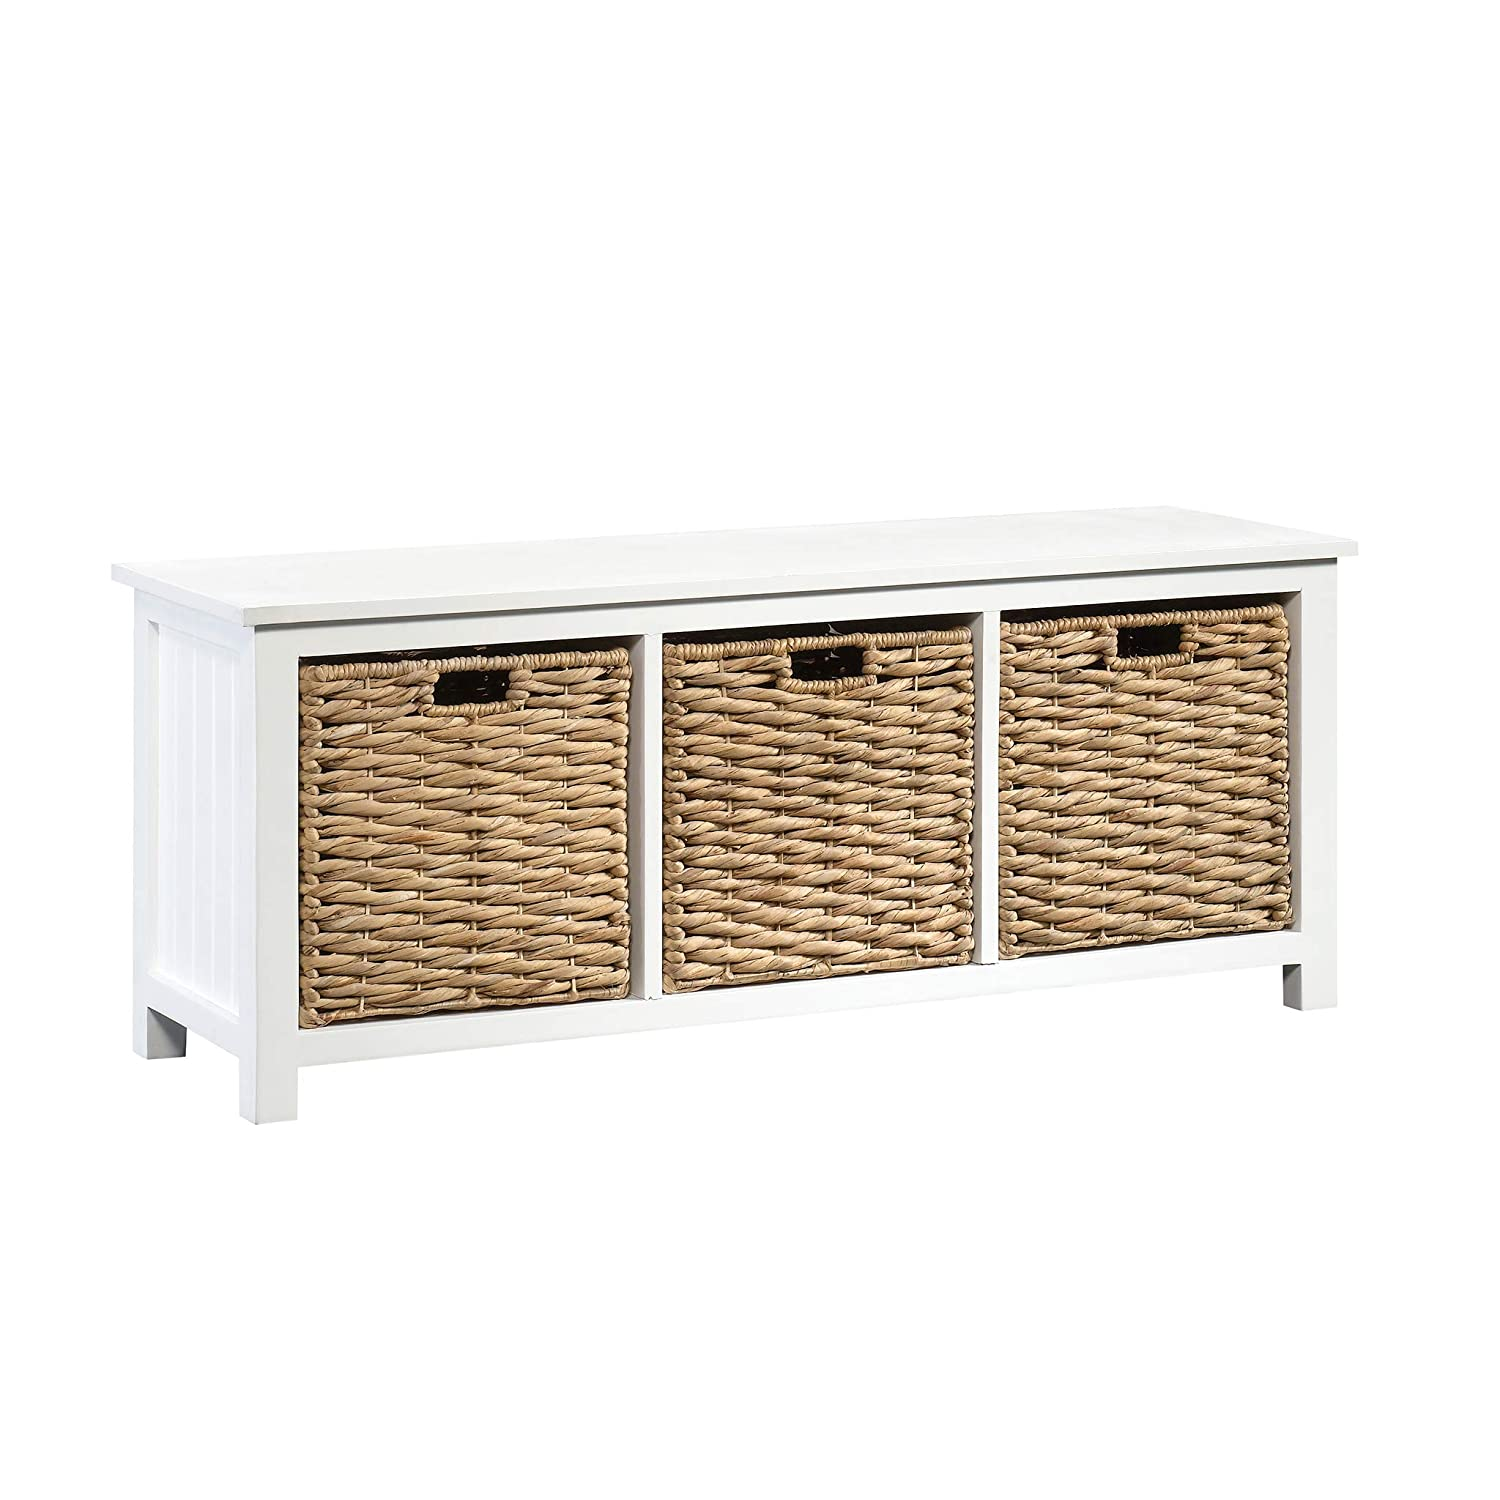 Strange Sauder 422754 Cottage Road Bench With Baskets L 43 94 X W 13 78 X H 17 72 White Finish Gmtry Best Dining Table And Chair Ideas Images Gmtryco